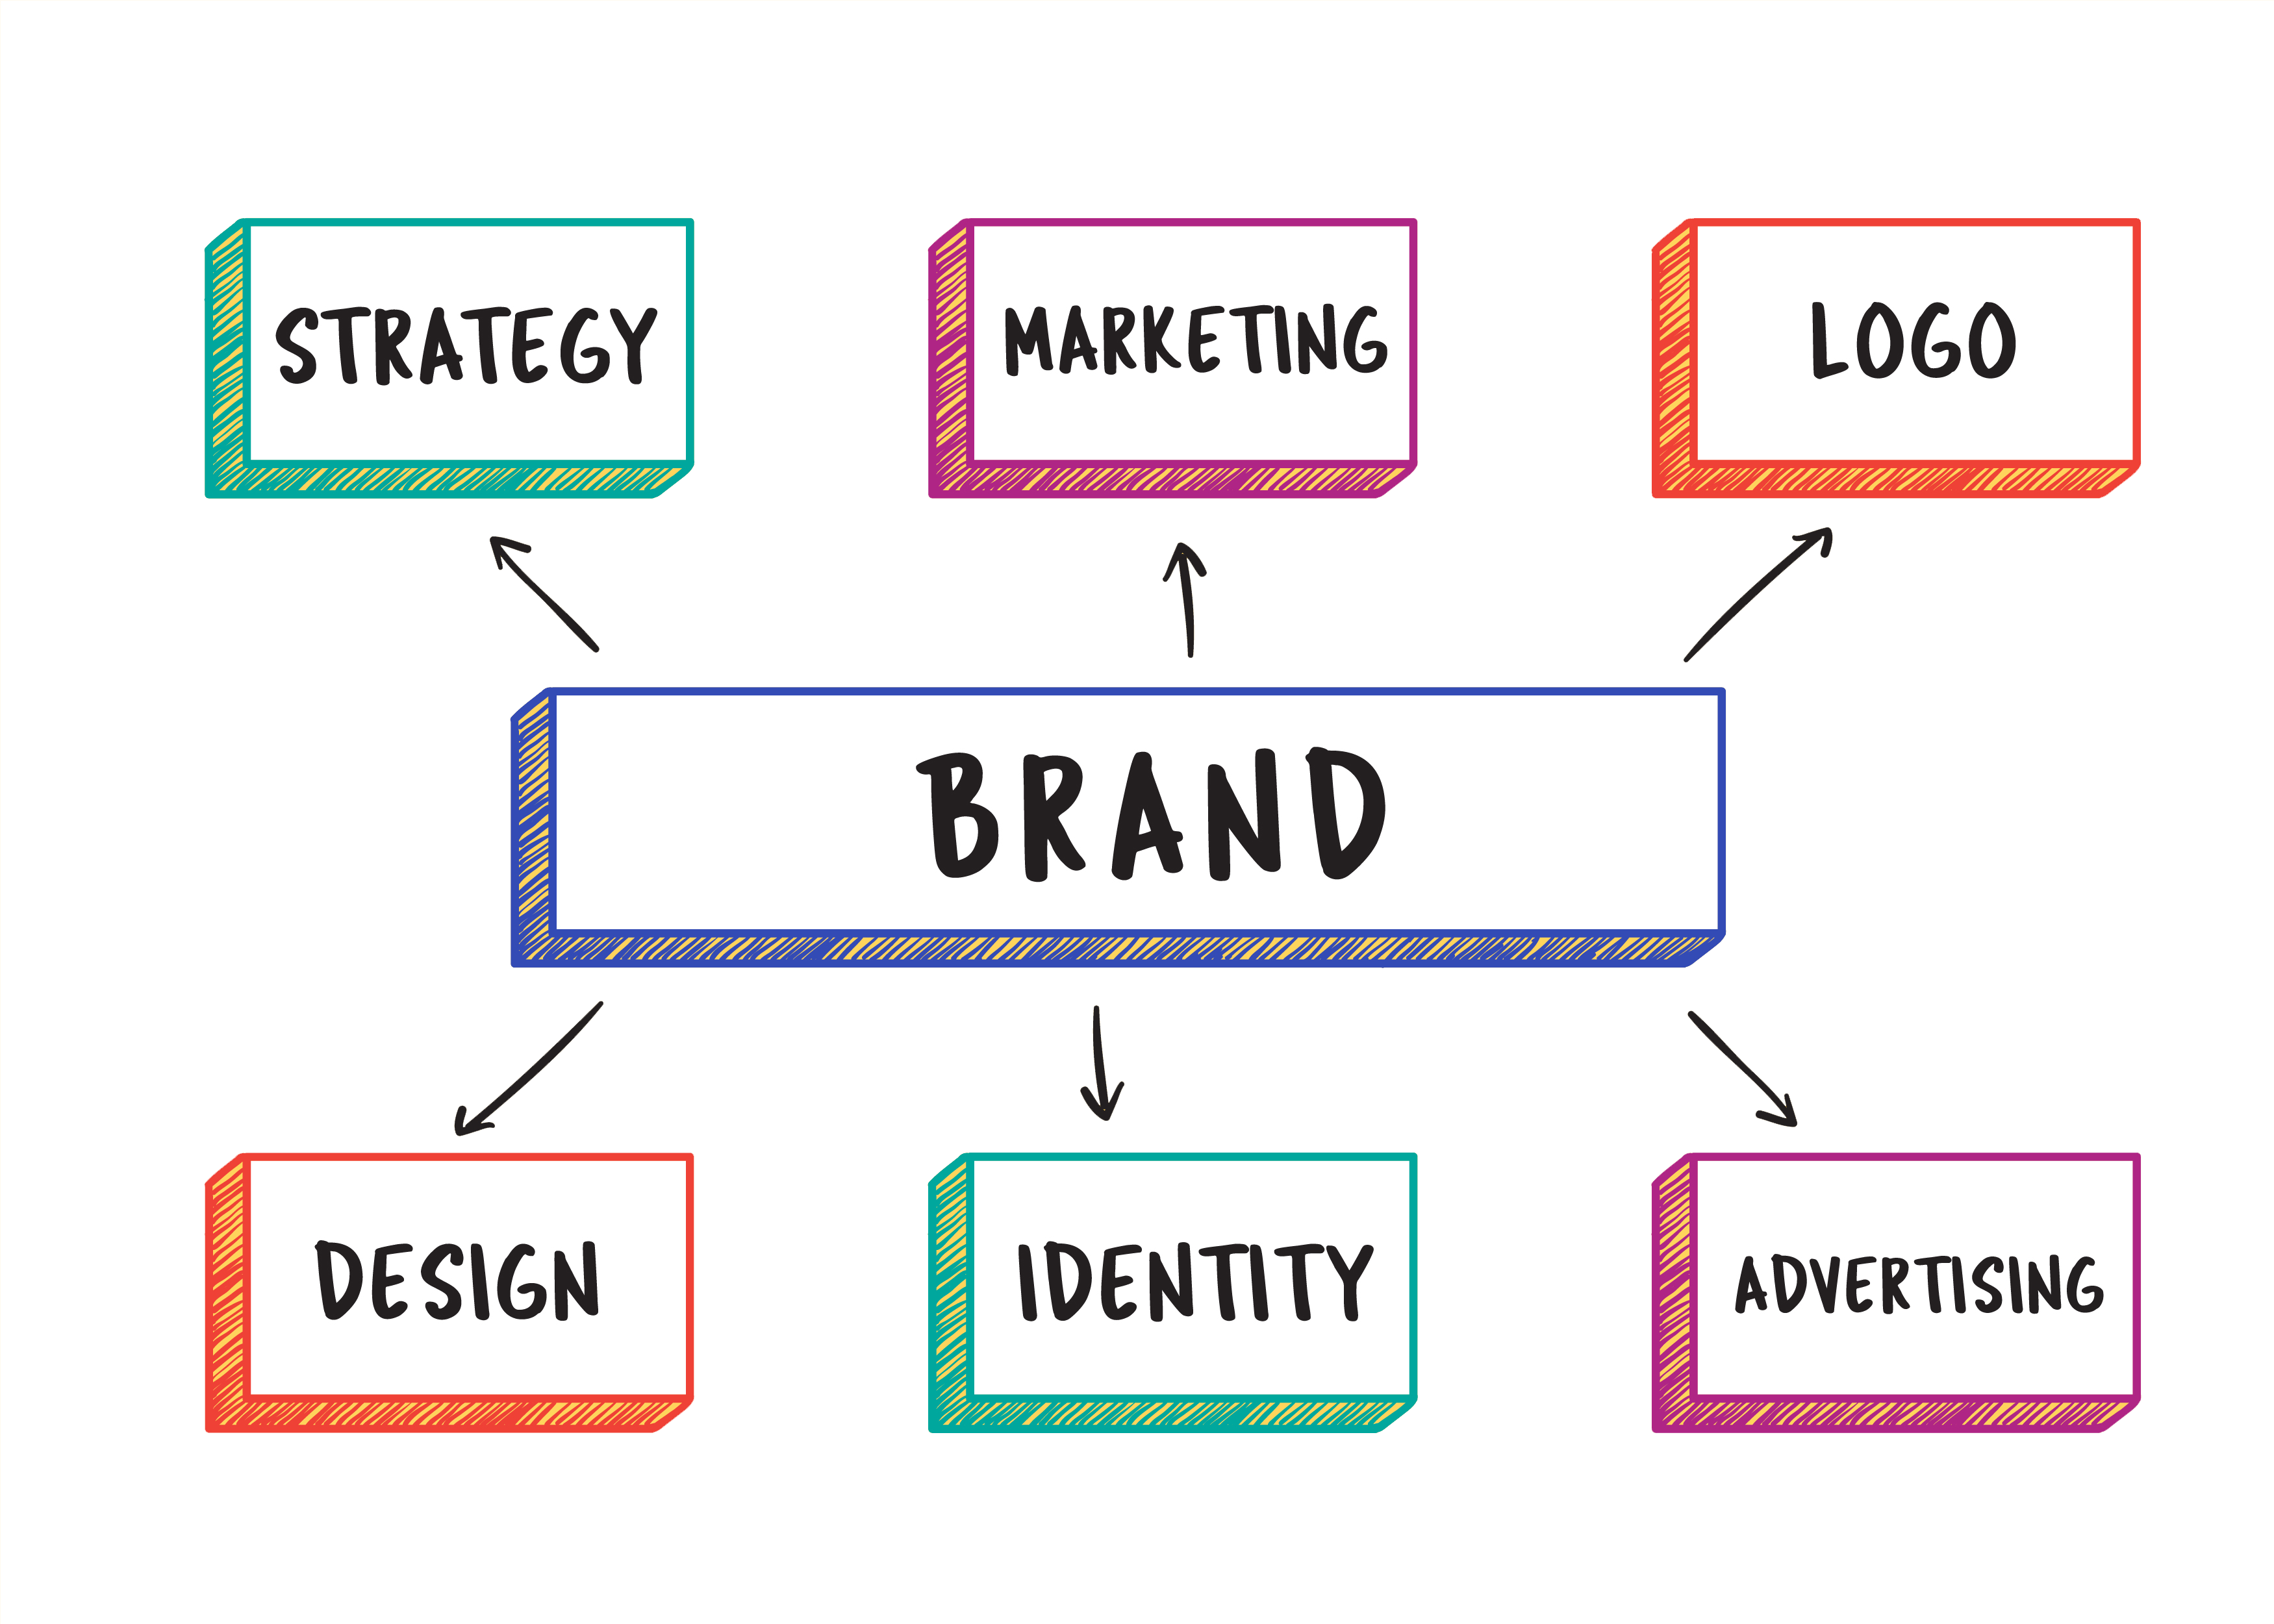 branding solutions company in bangalore, india